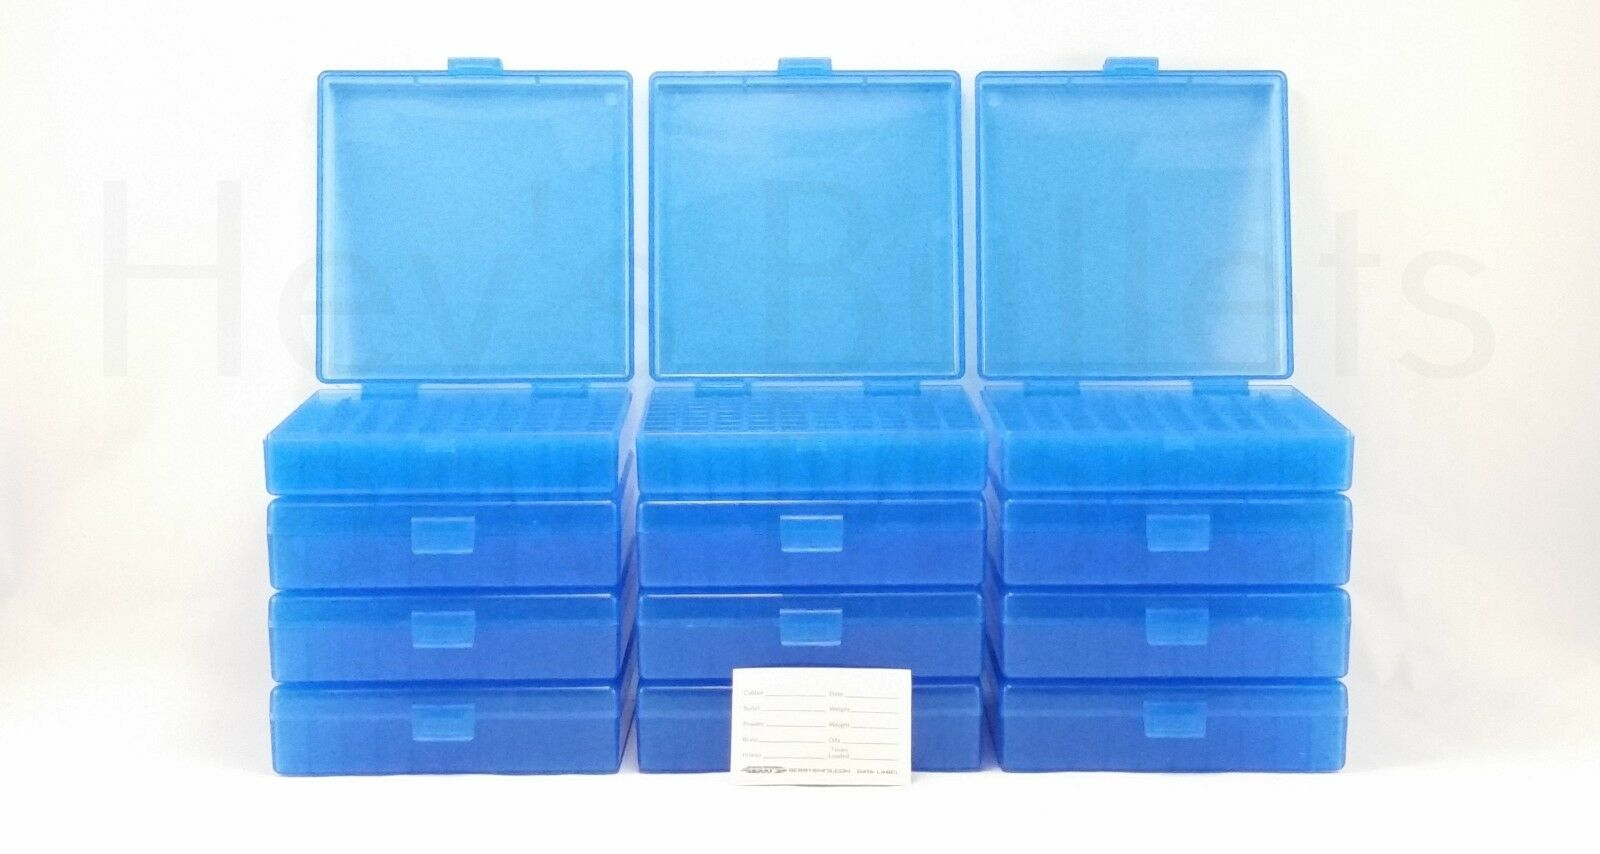 BERRY'S PLASTIC AMMO BOXES (12) blueE 100 Round 40 S&W   45 ACP - FREE SHIPPING